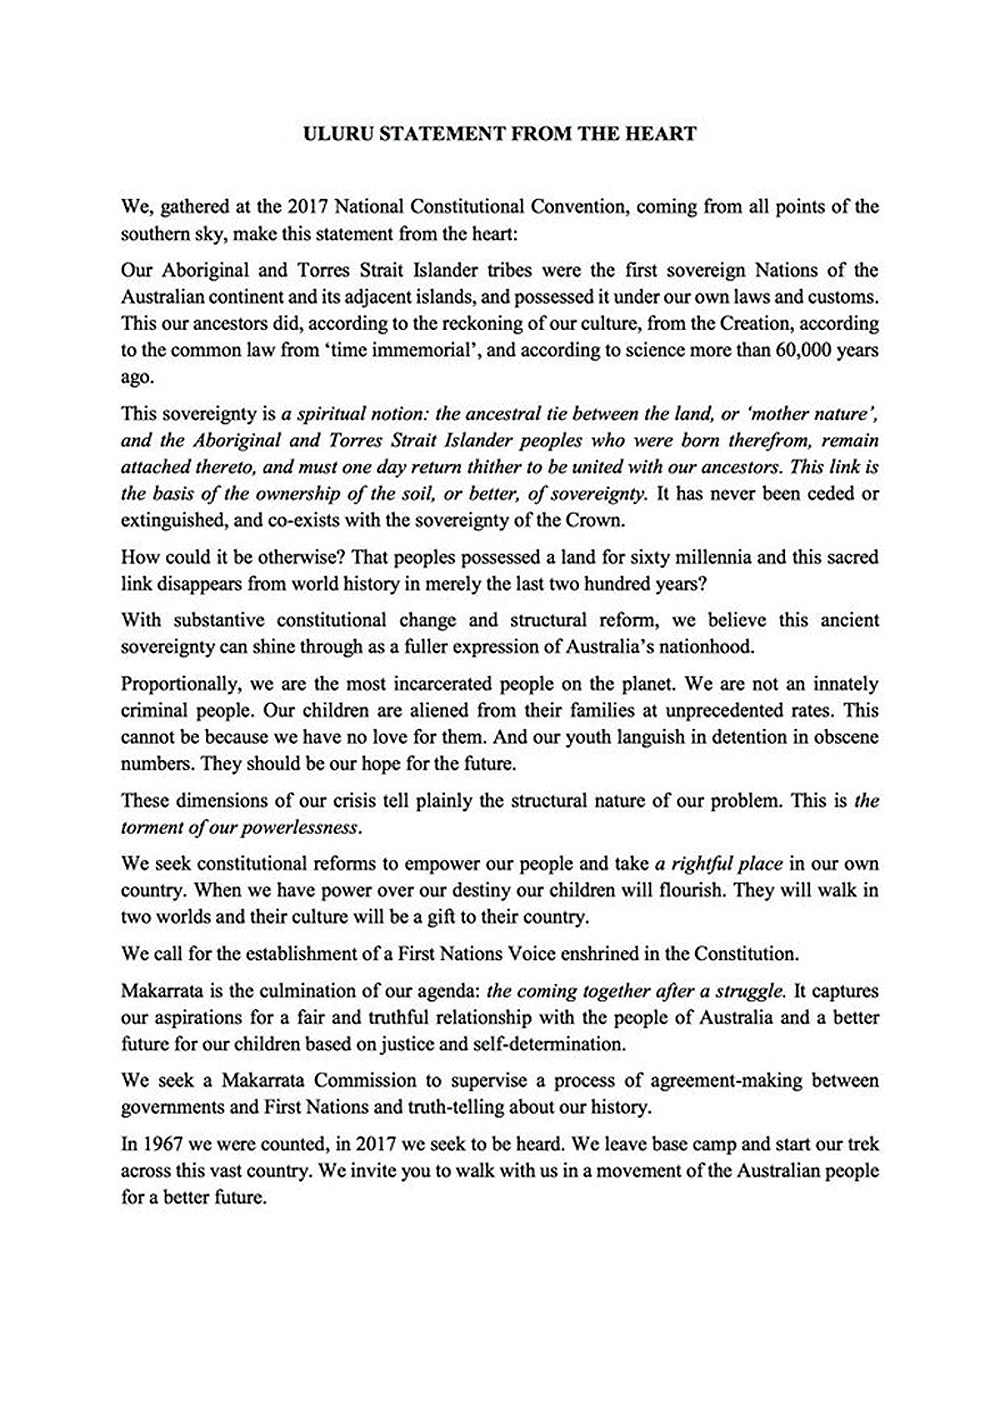 uluru statement from the heart u0027 wording and video reading